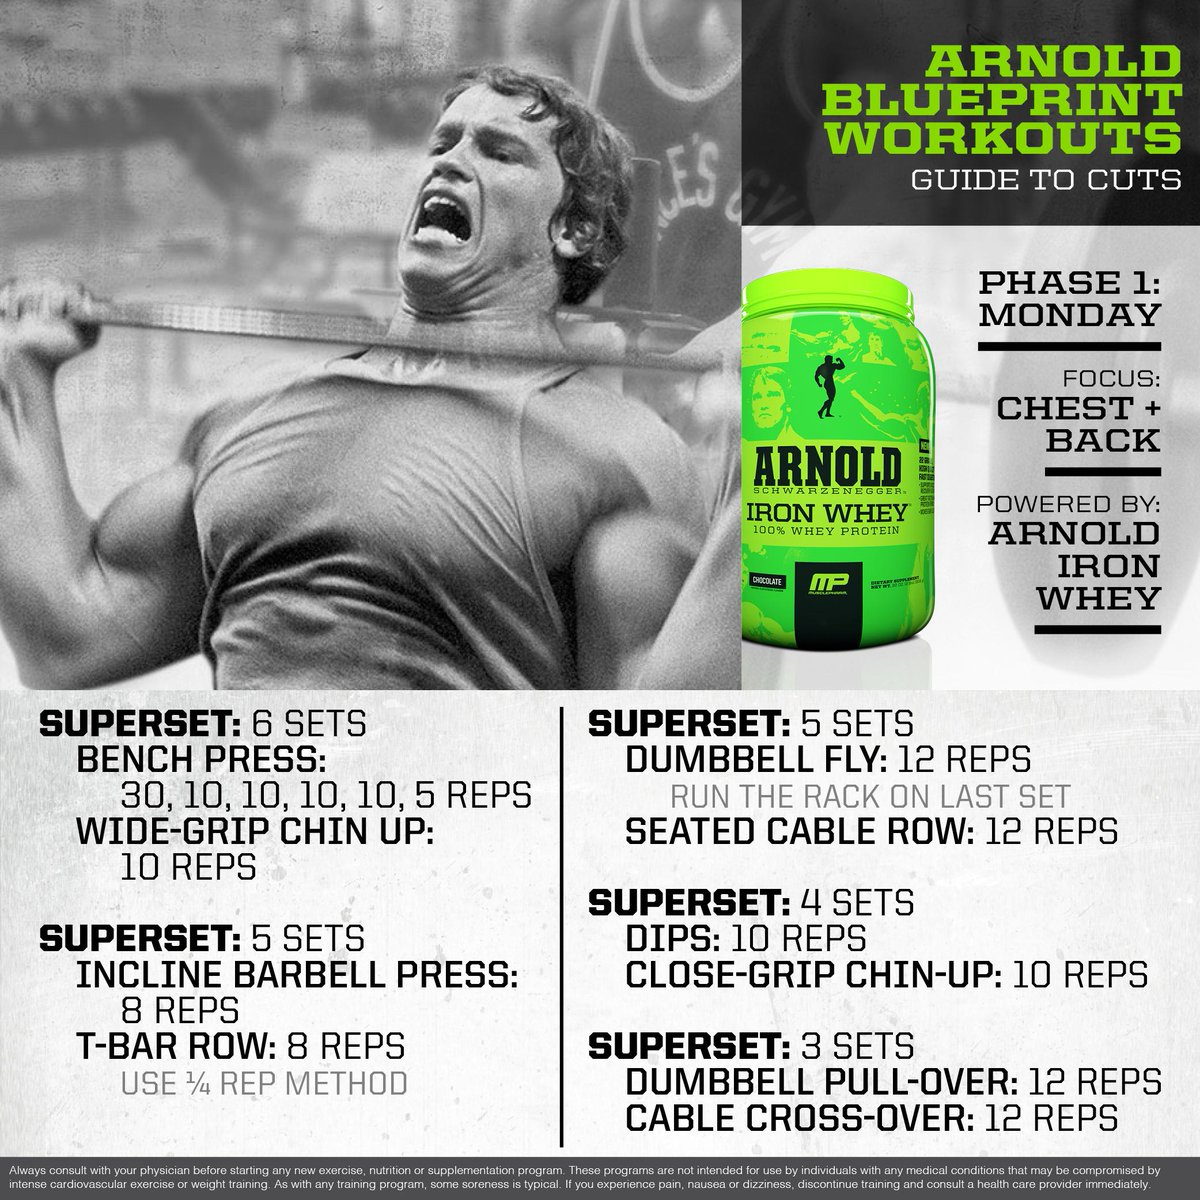 Arnold schwarzenegger blueprint workout phase 2 workout die besten arnold schwarzenegger blueprint workout phase 2 workout malvernweather Gallery